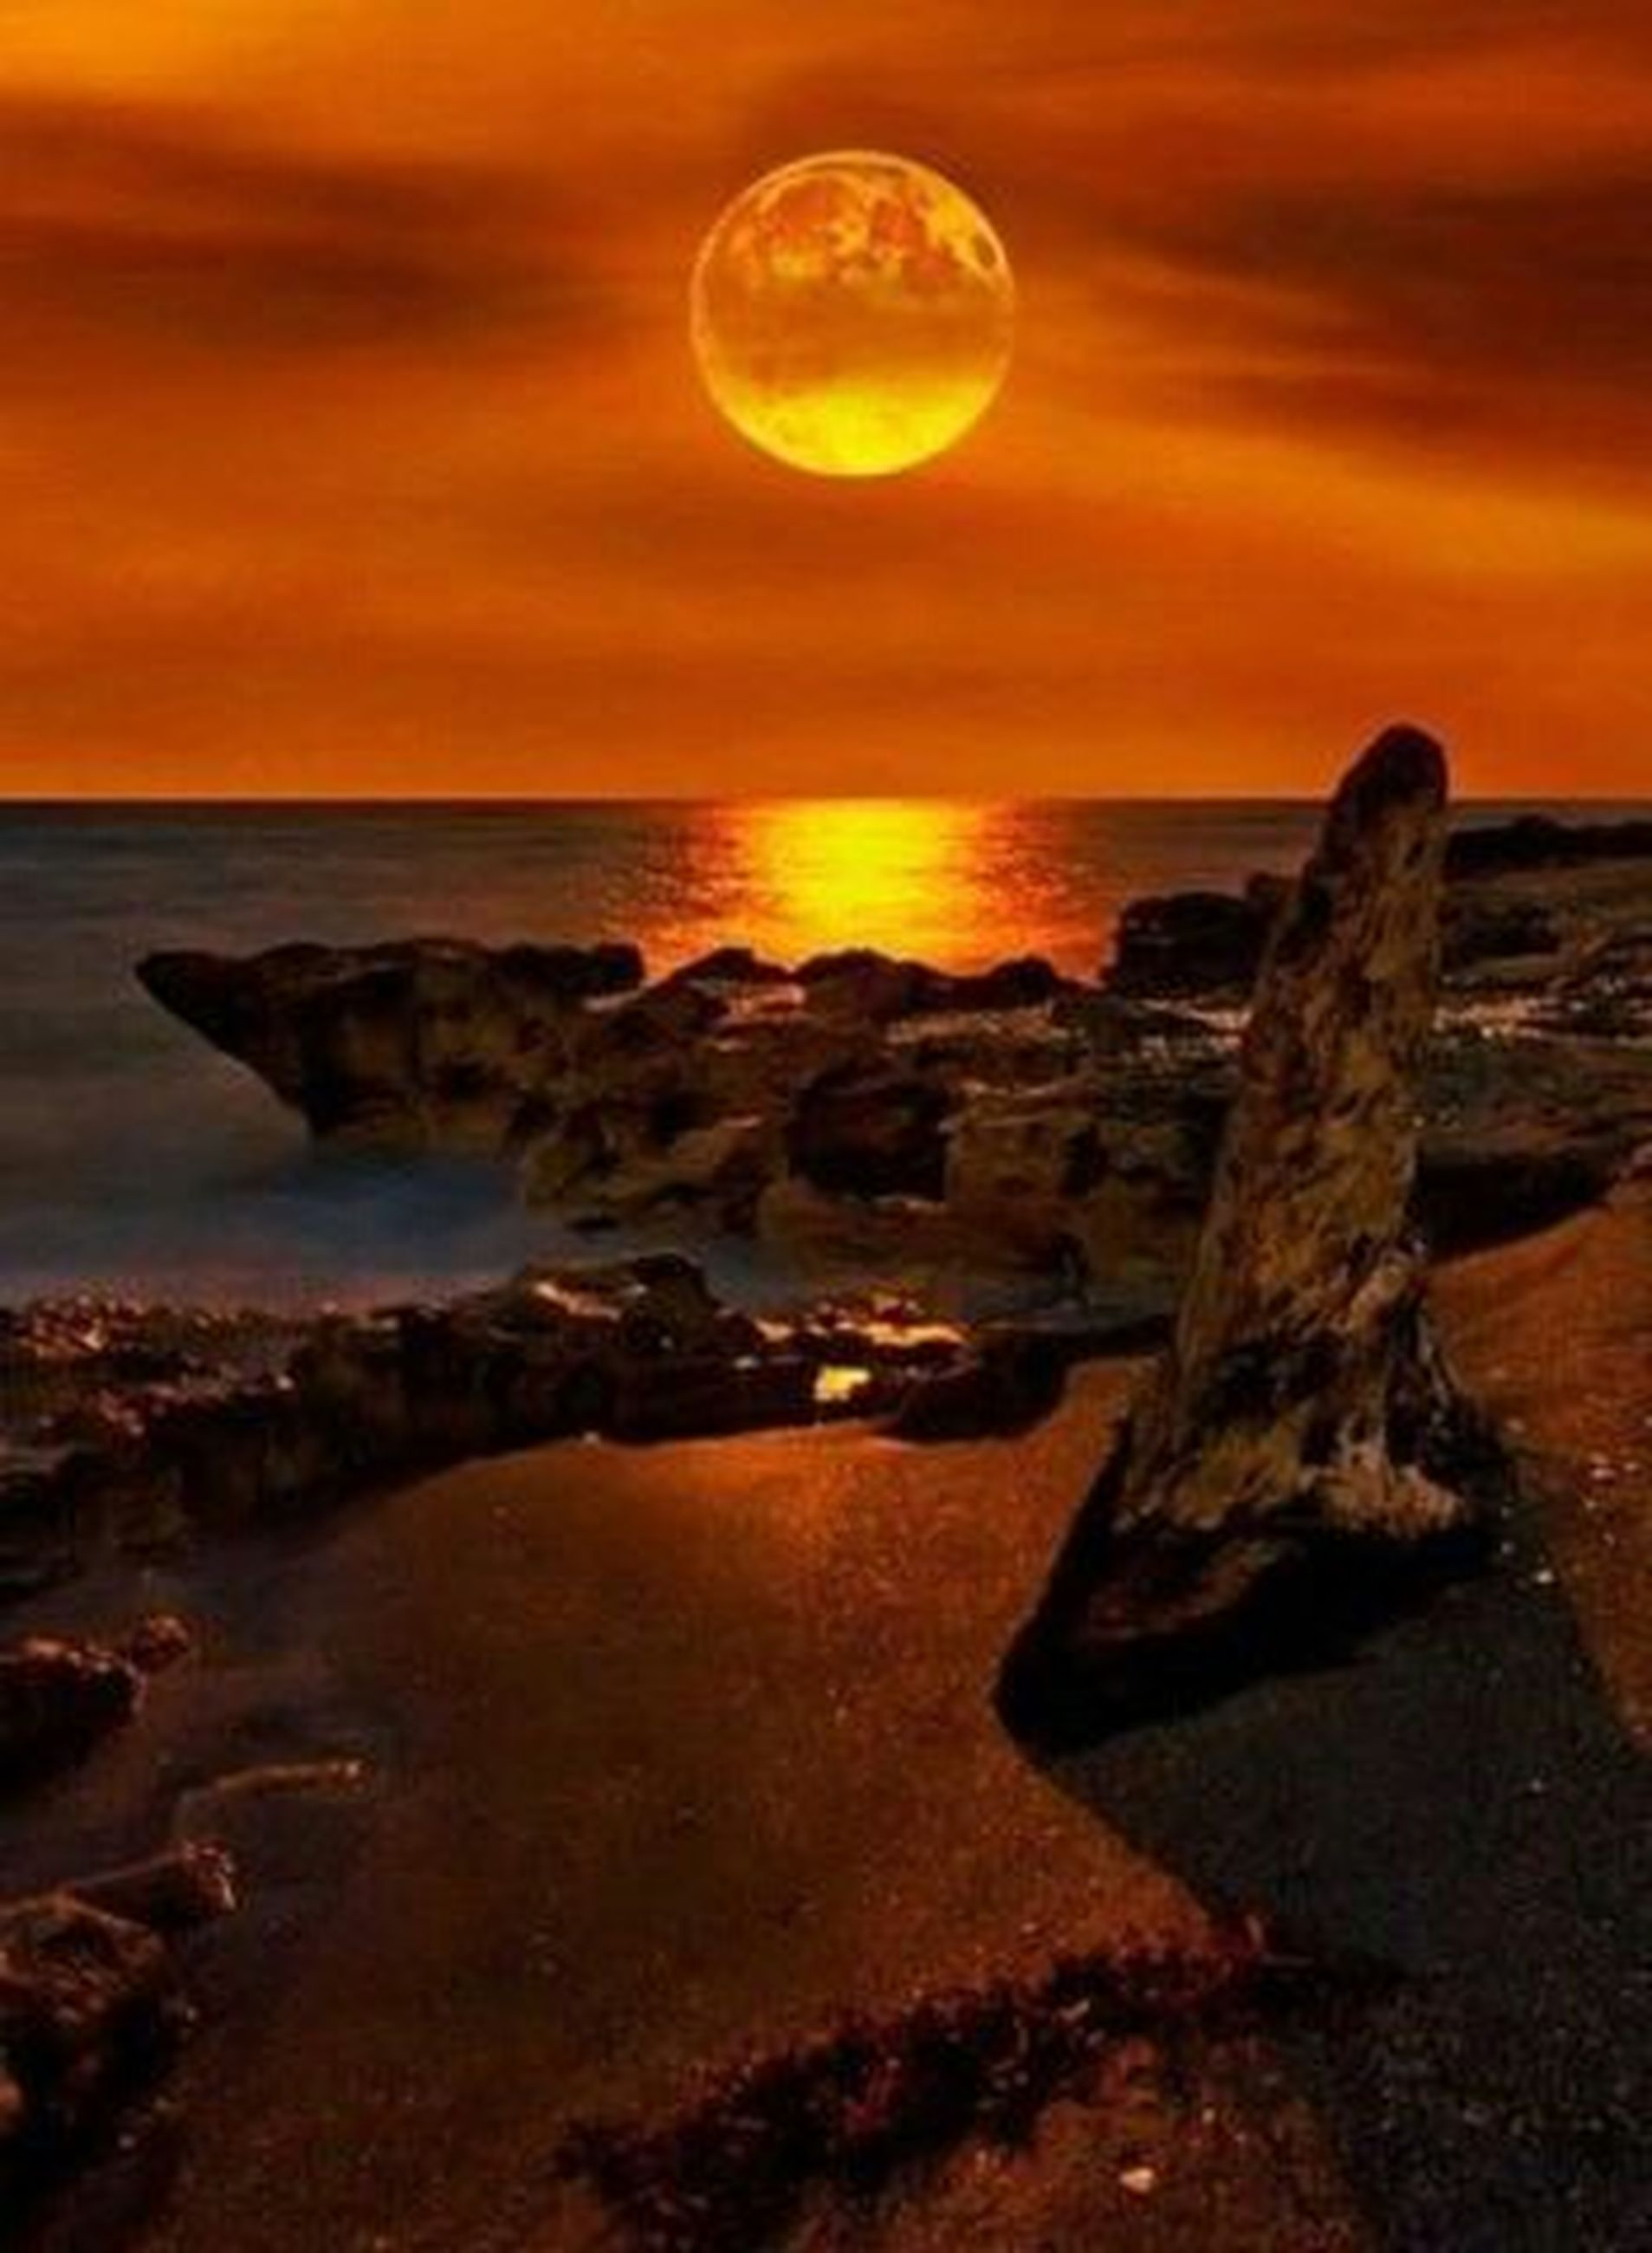 sunset, sea, scenics, horizon over water, beach, water, orange color, tranquil scene, beauty in nature, sky, tranquility, sun, shore, idyllic, nature, rock - object, reflection, coastline, outdoors, wave